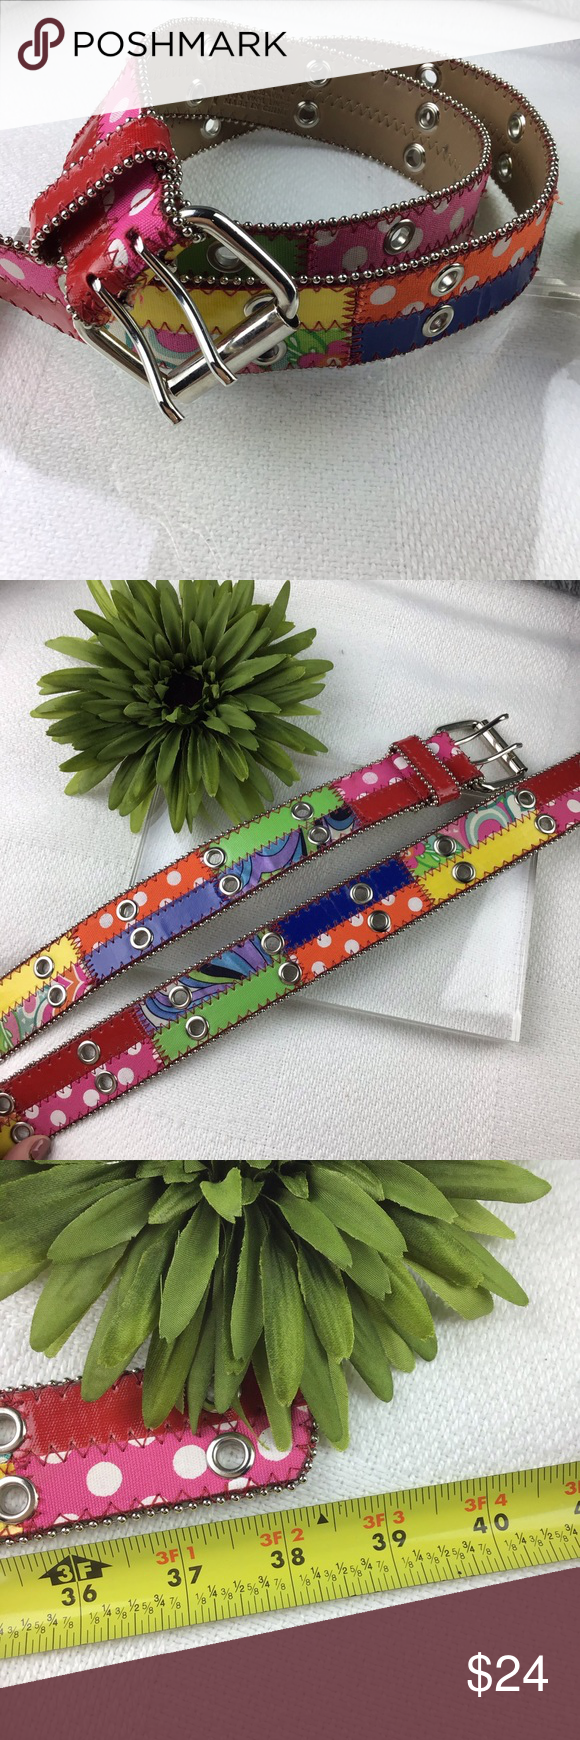 EUC Womens 38 colorful mixed media Small Belt Leather belt with patches of EUC Womens 38 colorful mixed media Small Belt Leather belt with patches of colorful fabrics